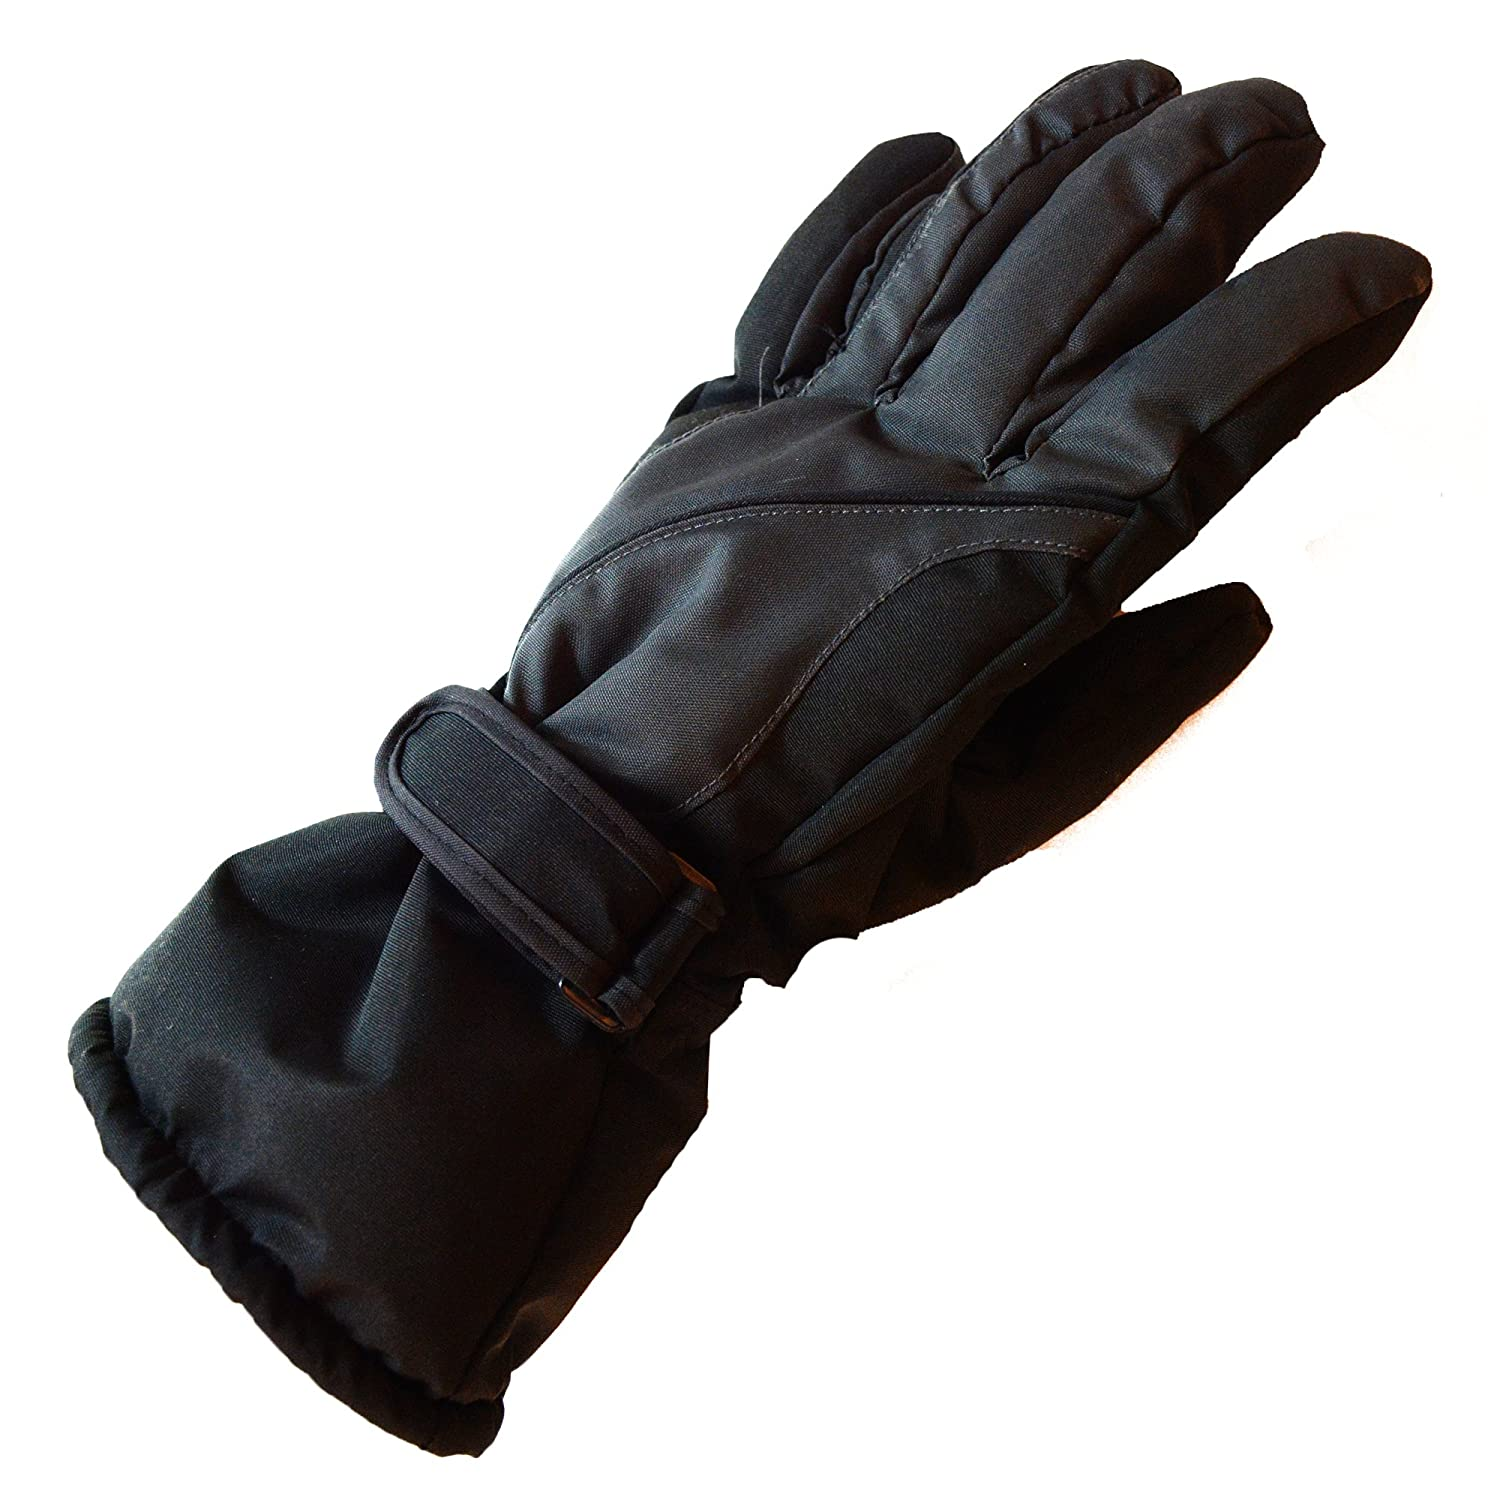 Ski Gloves,RunRRIn Winter Warmest Waterproof and Breathable Snow Gloves for Mens,Womens,ladies and K APPAREL メンズ カラー: ブラック B077RHHRSQ